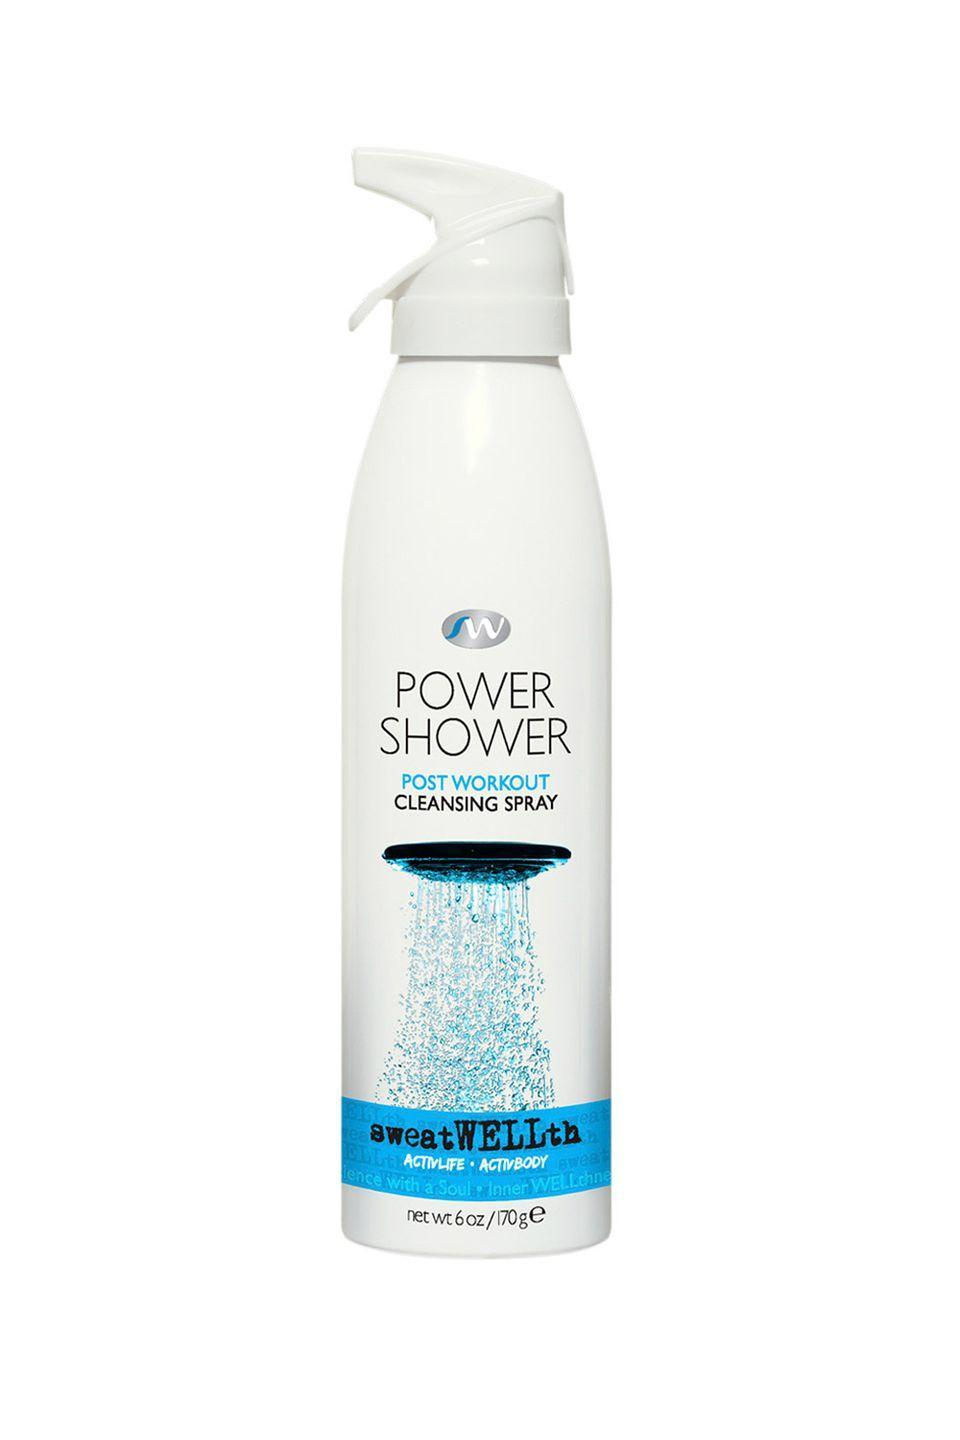 """<p>Use it on those days when you don't have time for a post-sweat sesh shower. </p><p>sweatWELLth Power Shower, $25, <a href=""""https://www.sweatwellth.com/"""" rel=""""nofollow noopener"""" target=""""_blank"""" data-ylk=""""slk:sweatwellth.com"""" class=""""link rapid-noclick-resp"""">sweatwellth.com</a></p>"""